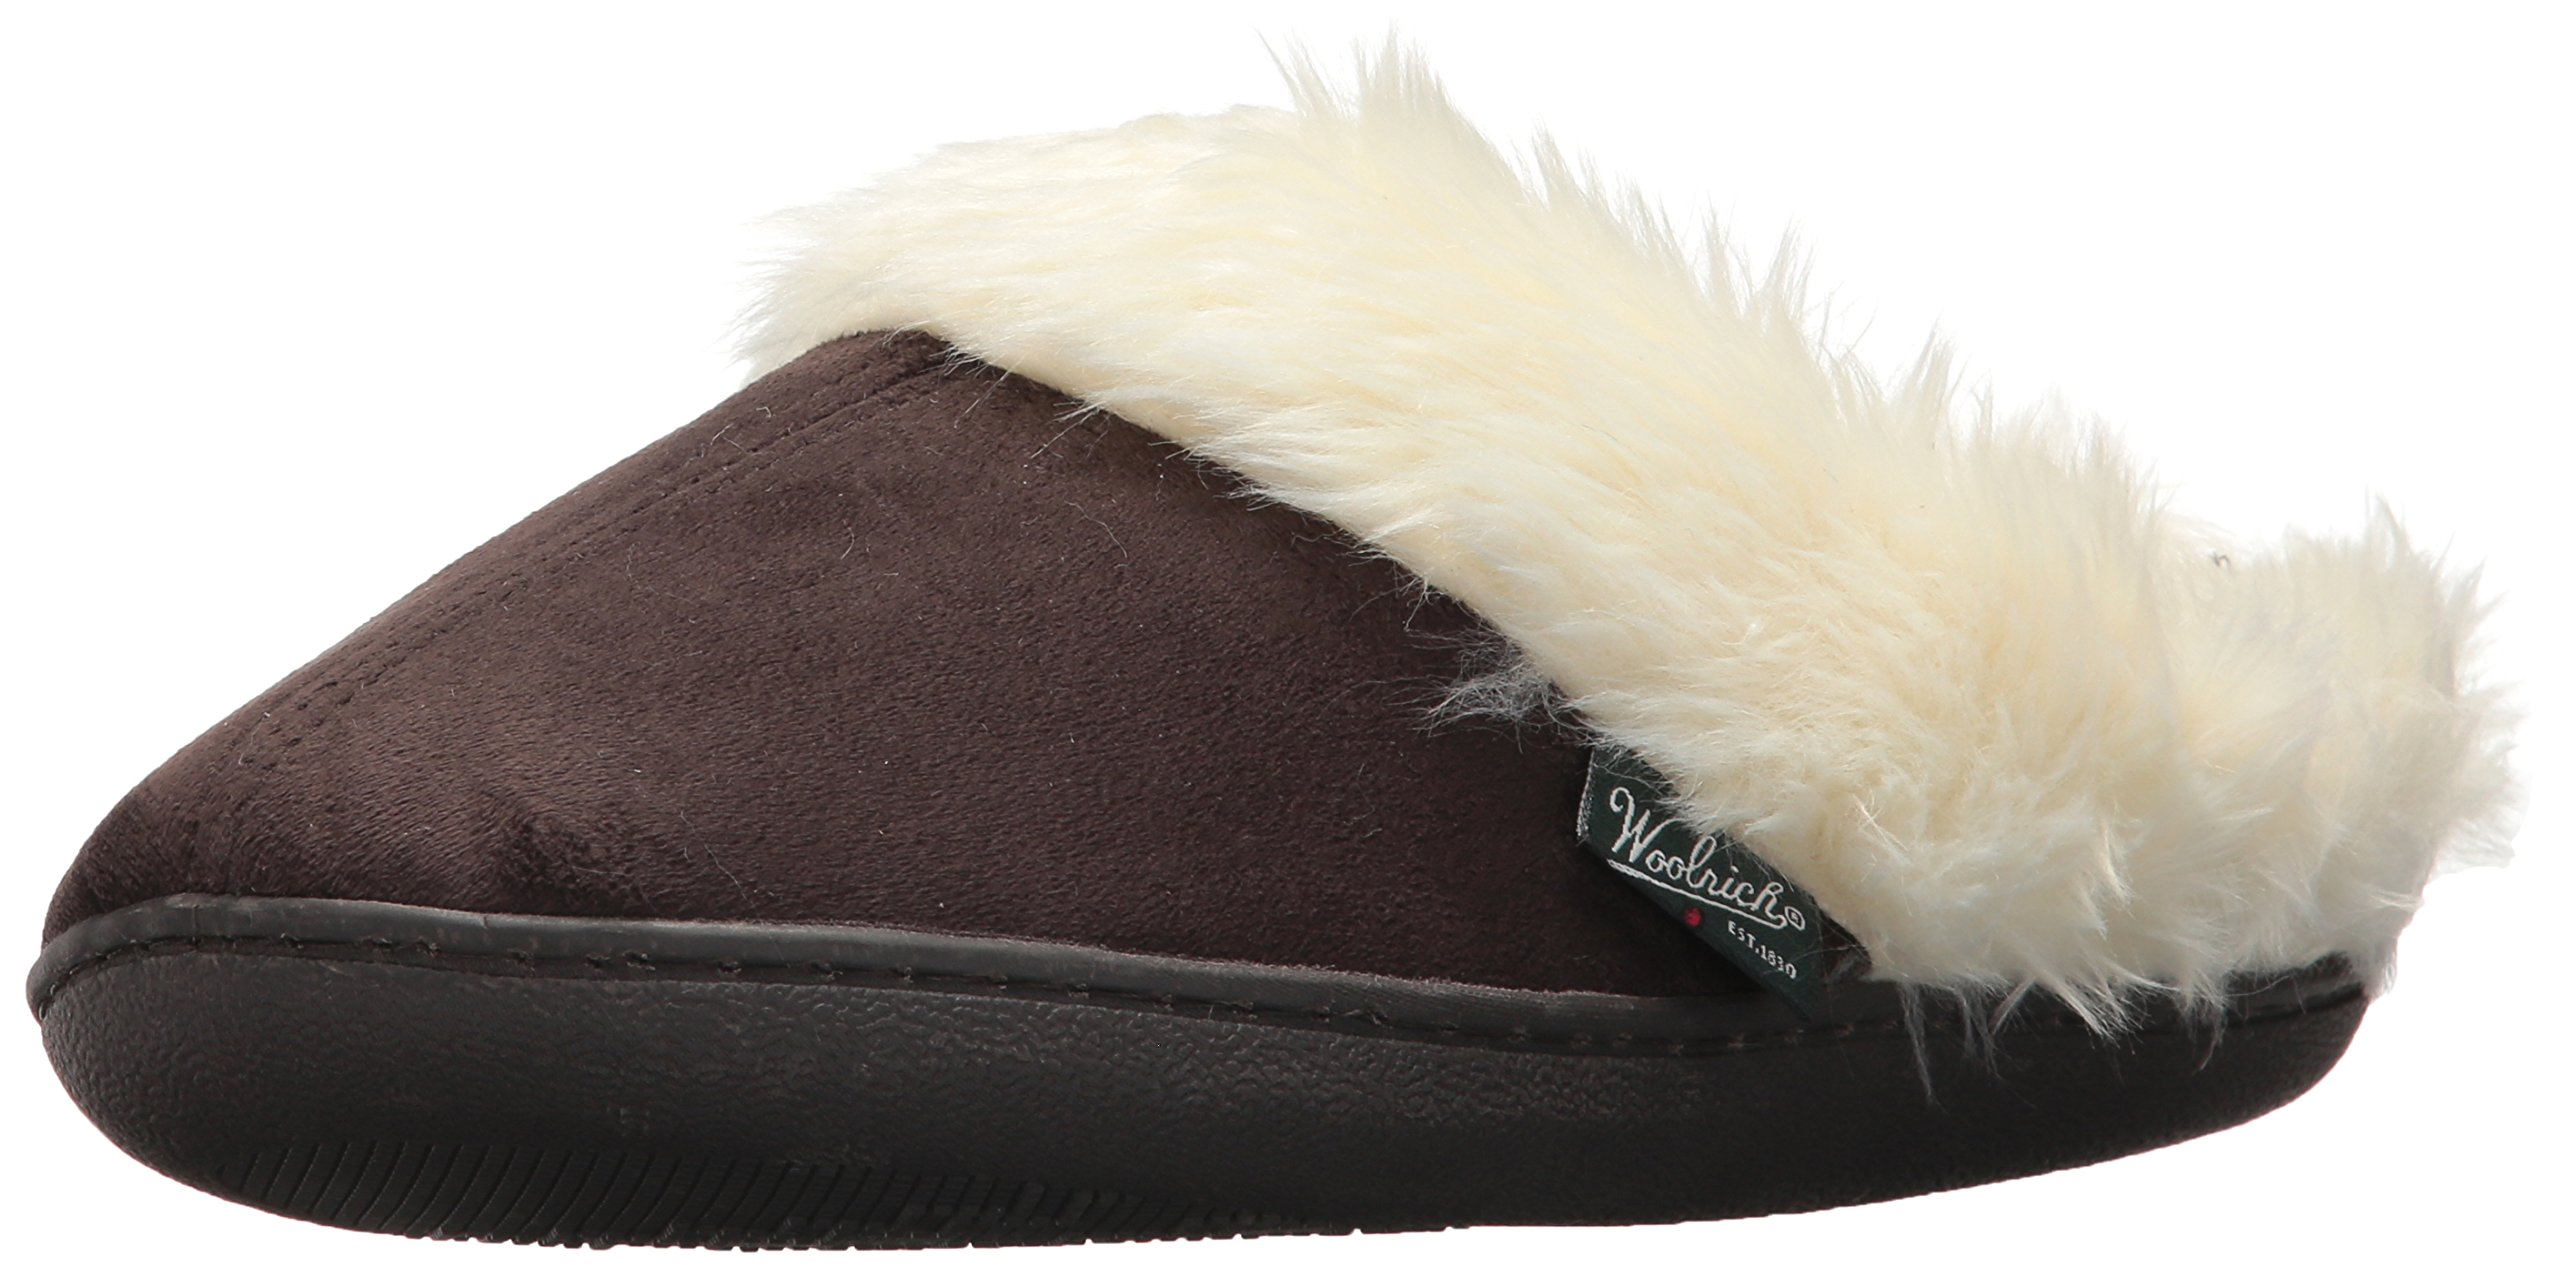 Woolrich Women's Cabin Lounger Moccasin, Chocolate, 8 M US